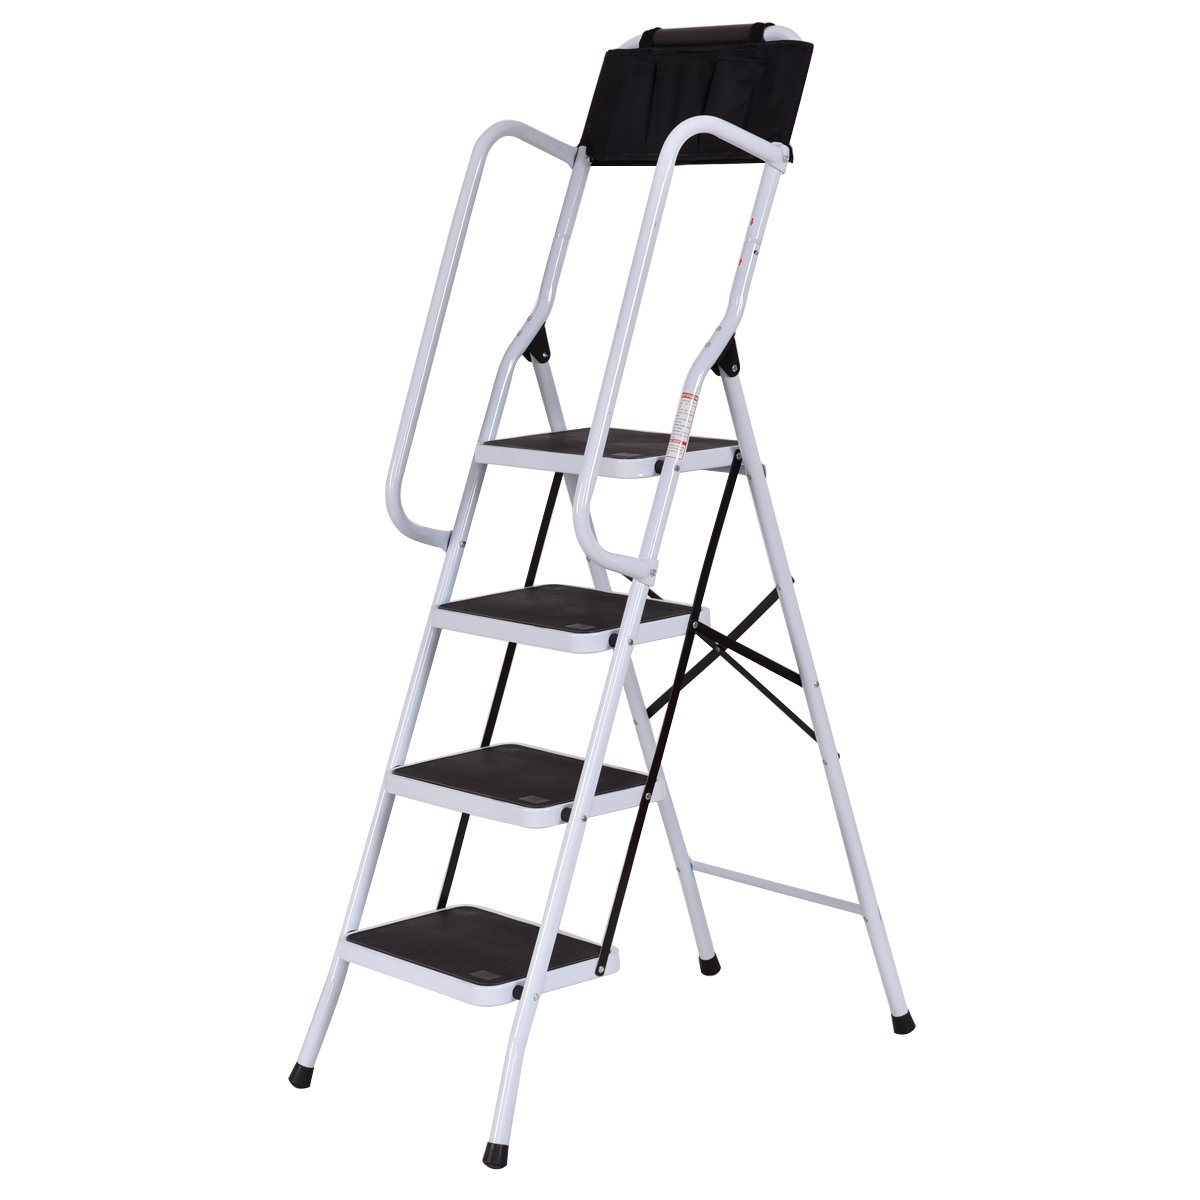 Toolsempire 2 in 1 Folding Non-Slip 4 Step Ladder with handrails and Tool Pouch Caddy 330lbs Capacity